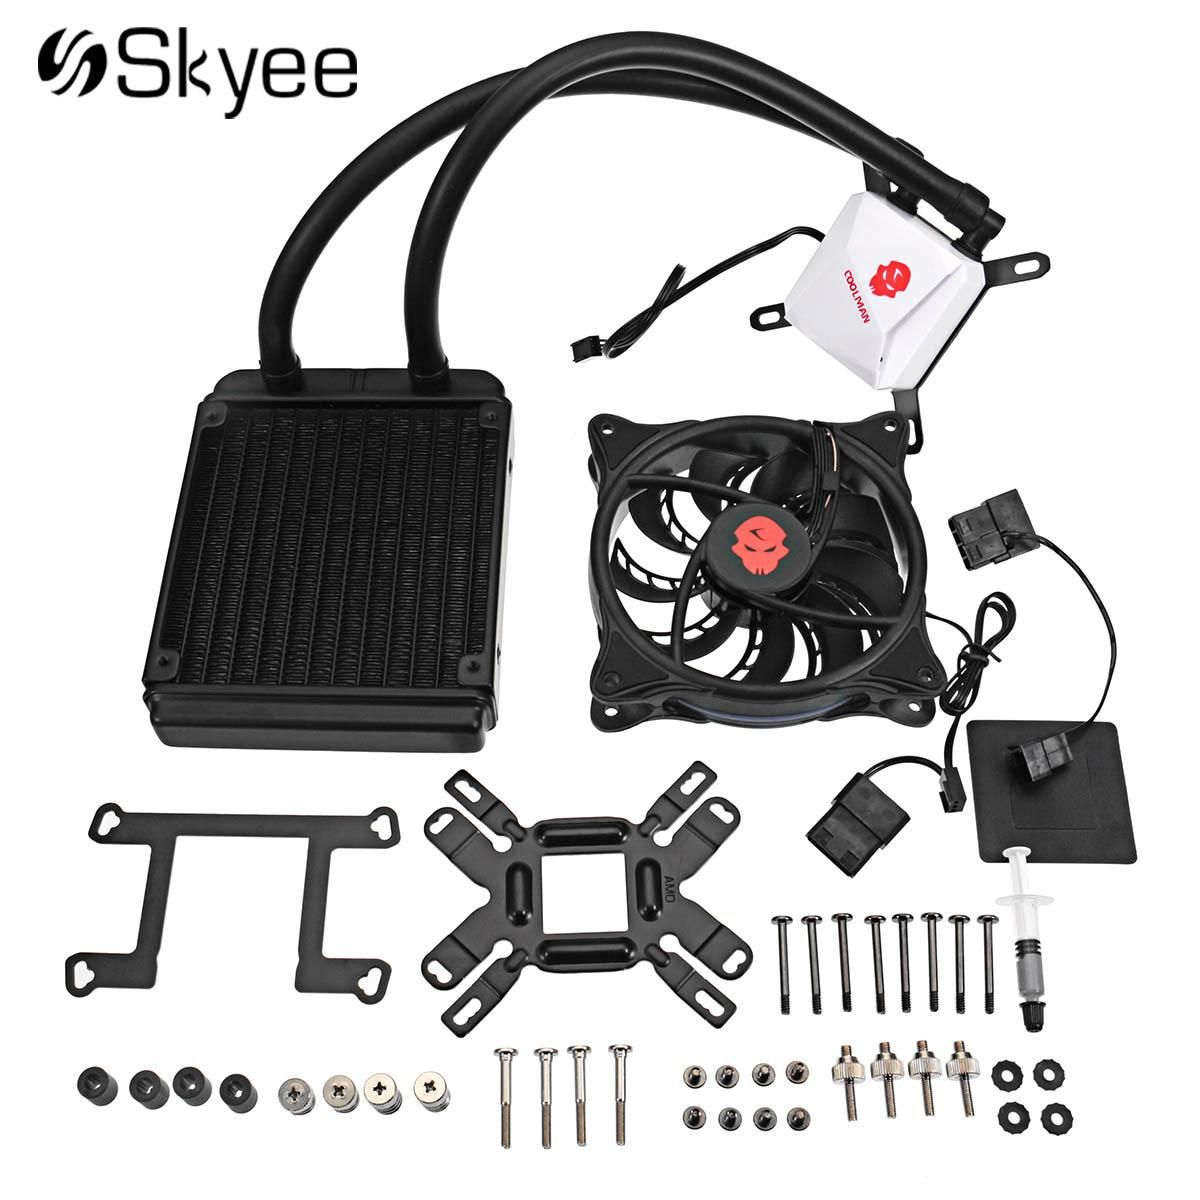 Diy Pc Rgb Led Water Cooling Fan Kit With Water Row Cpu Water